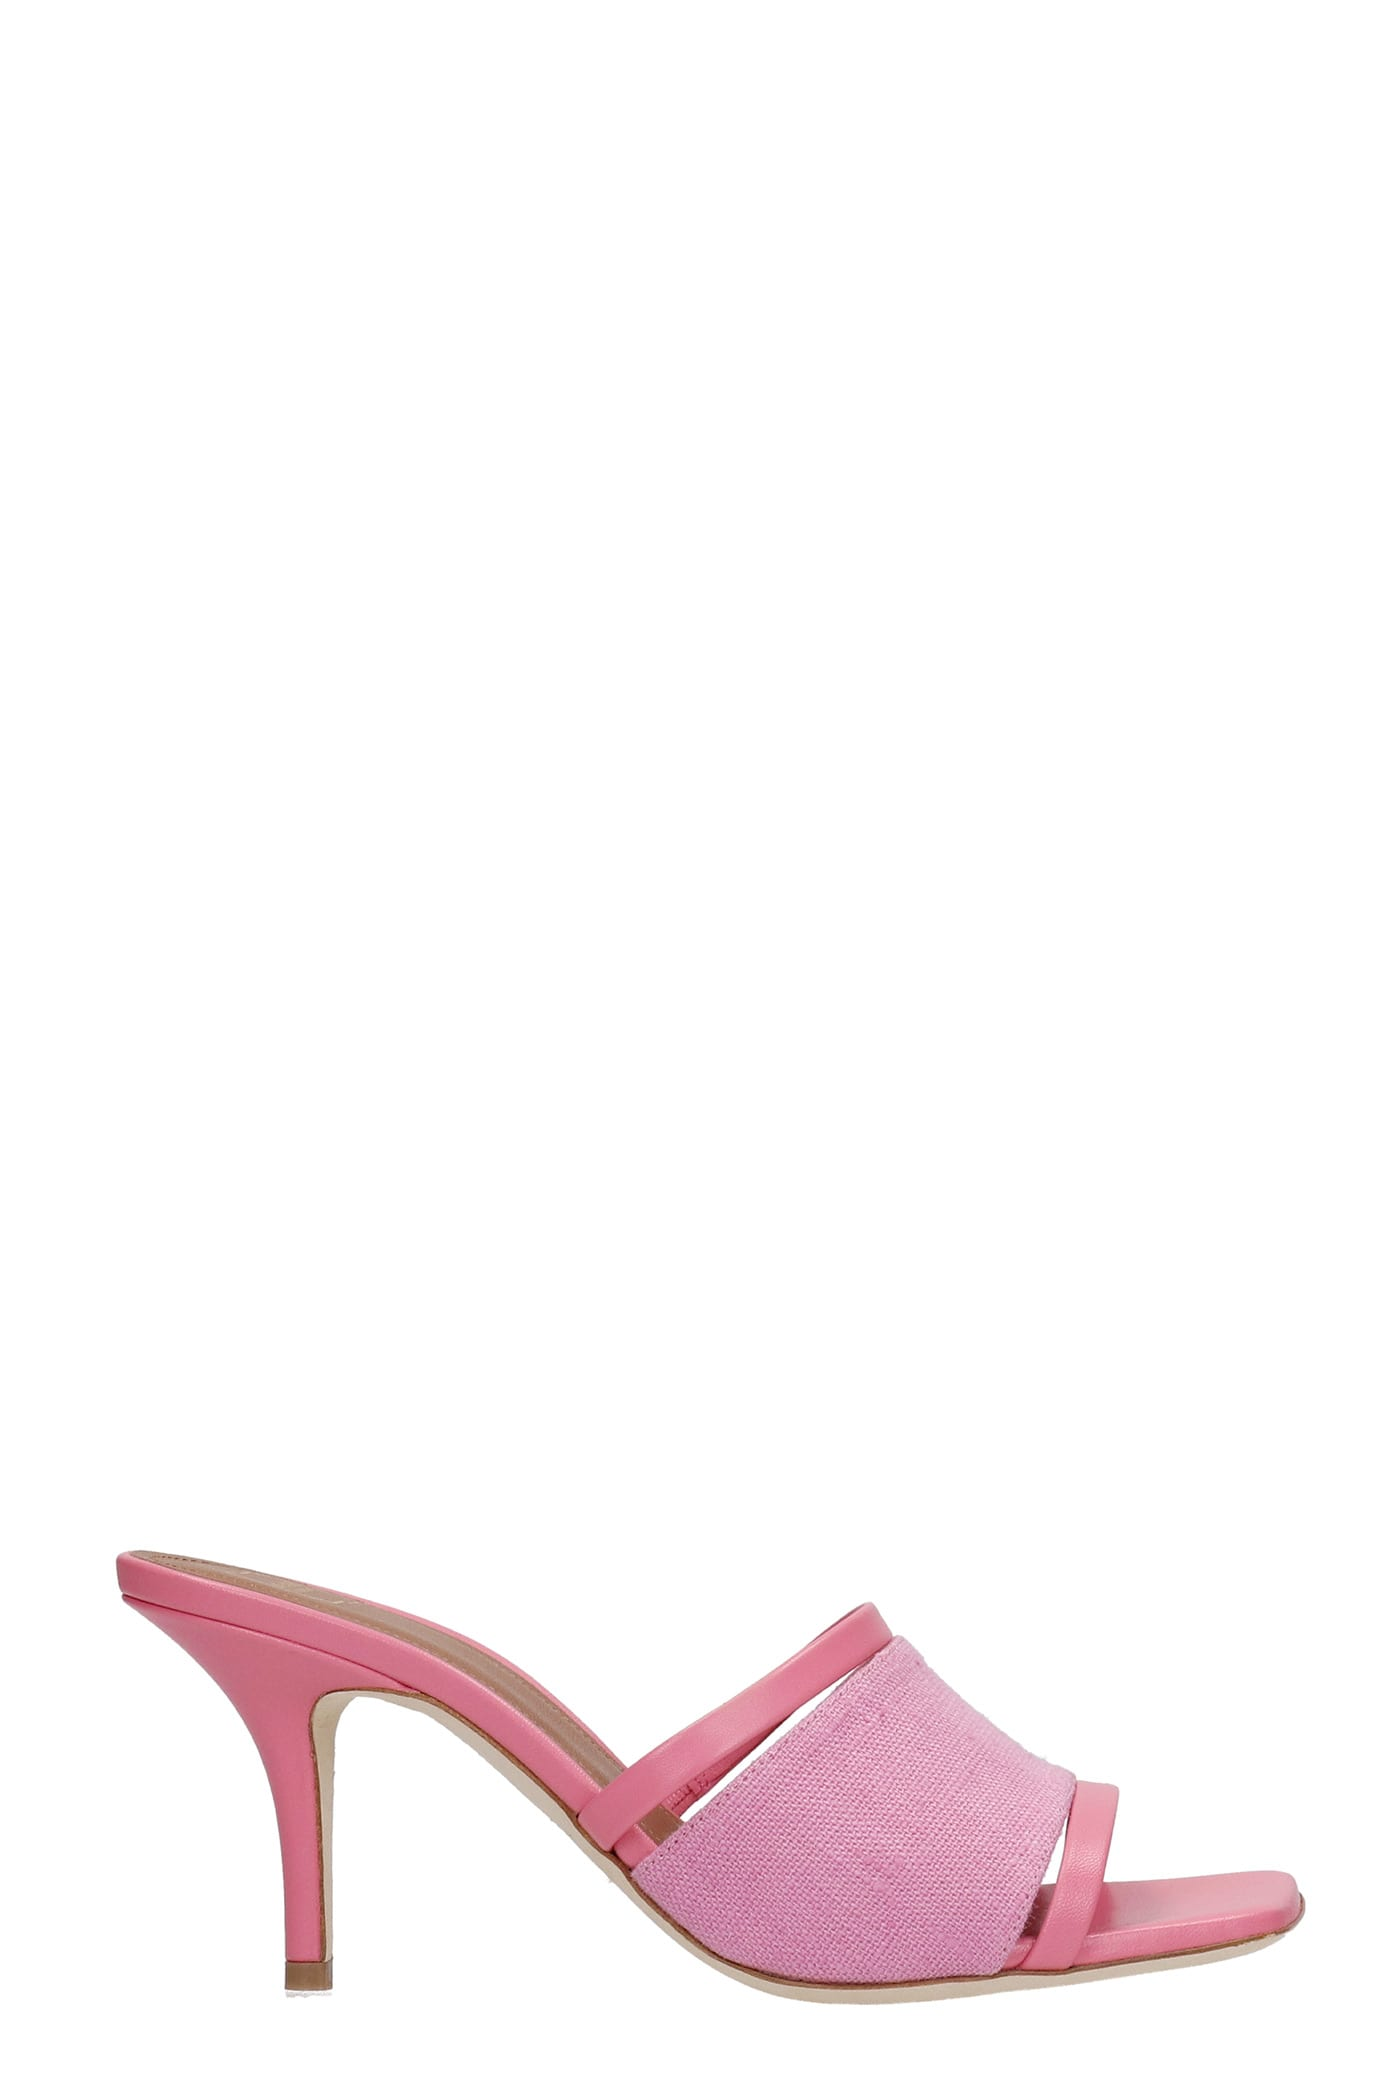 Malone Souliers LANEY SANDALS IN ROSE-PINK LEATHER